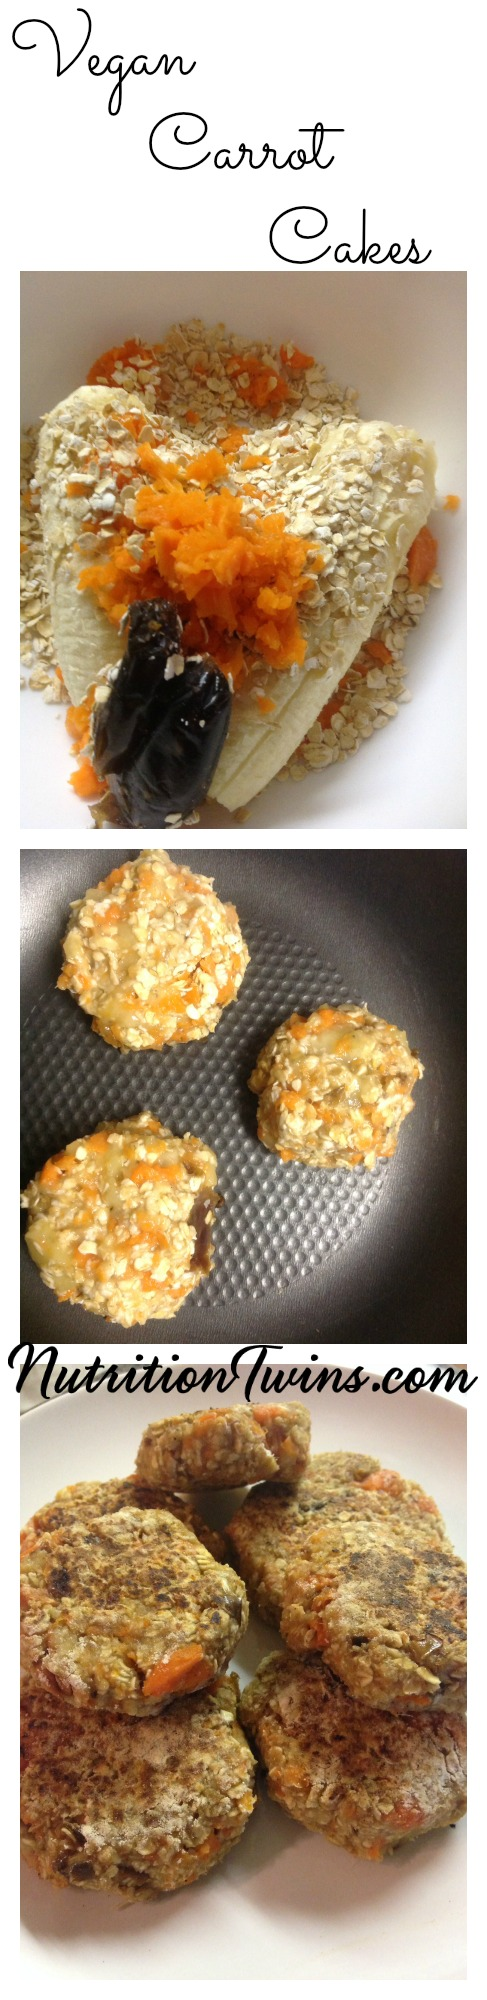 Vegan_Carrot_cakes_pinterest